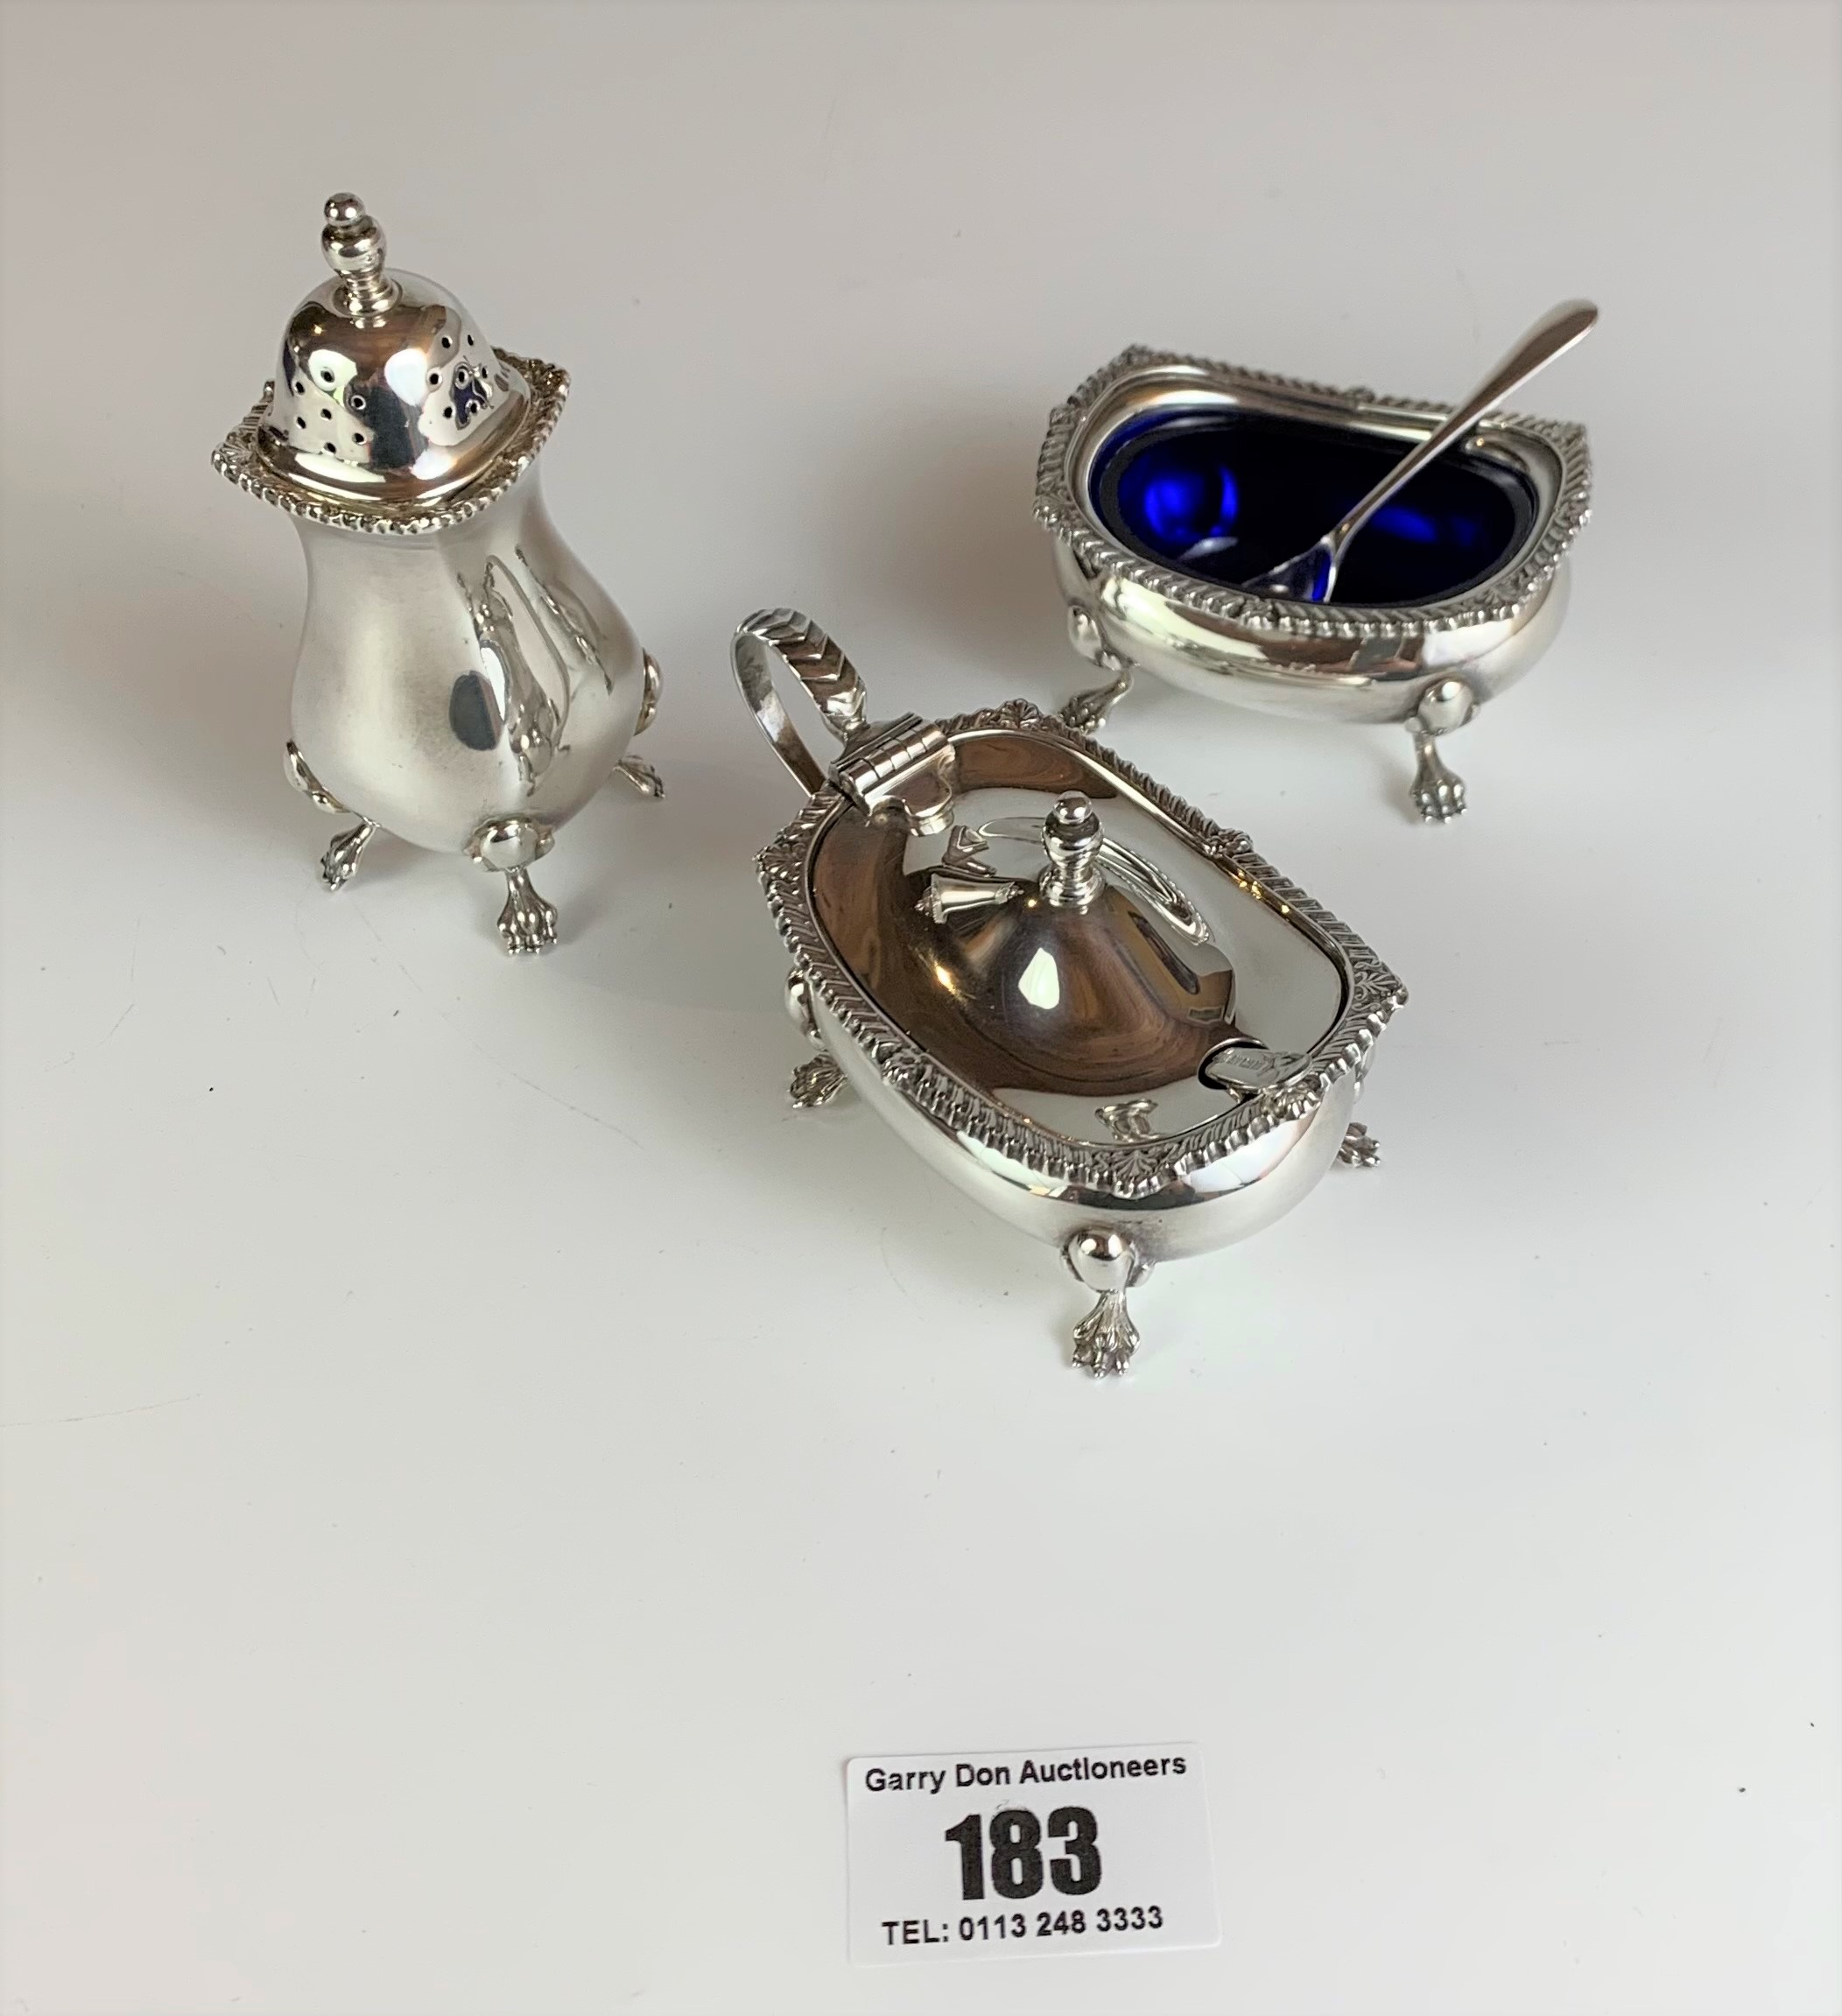 3 piece silver cruet set, pepper pot, salt dish with blue liner and spoon, mustard pot with blue - Image 2 of 4